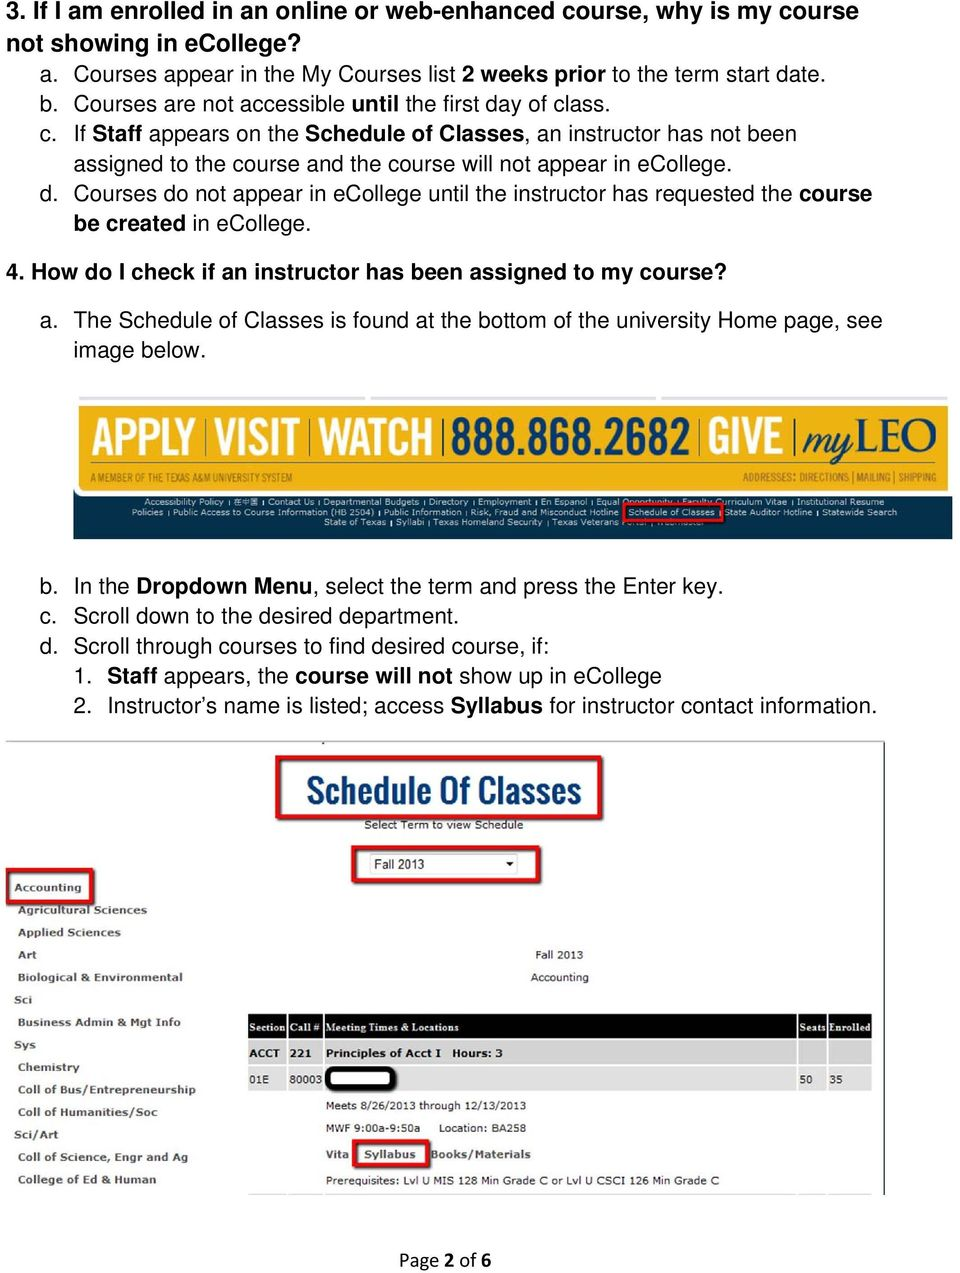 d. Courses do not appear in ecollege until the instructor has requested the course be created in ecollege. 4. How do I check if an instructor has been assigned to my course? a. The Schedule of Classes is found at the bottom of the university Home page, see image below.